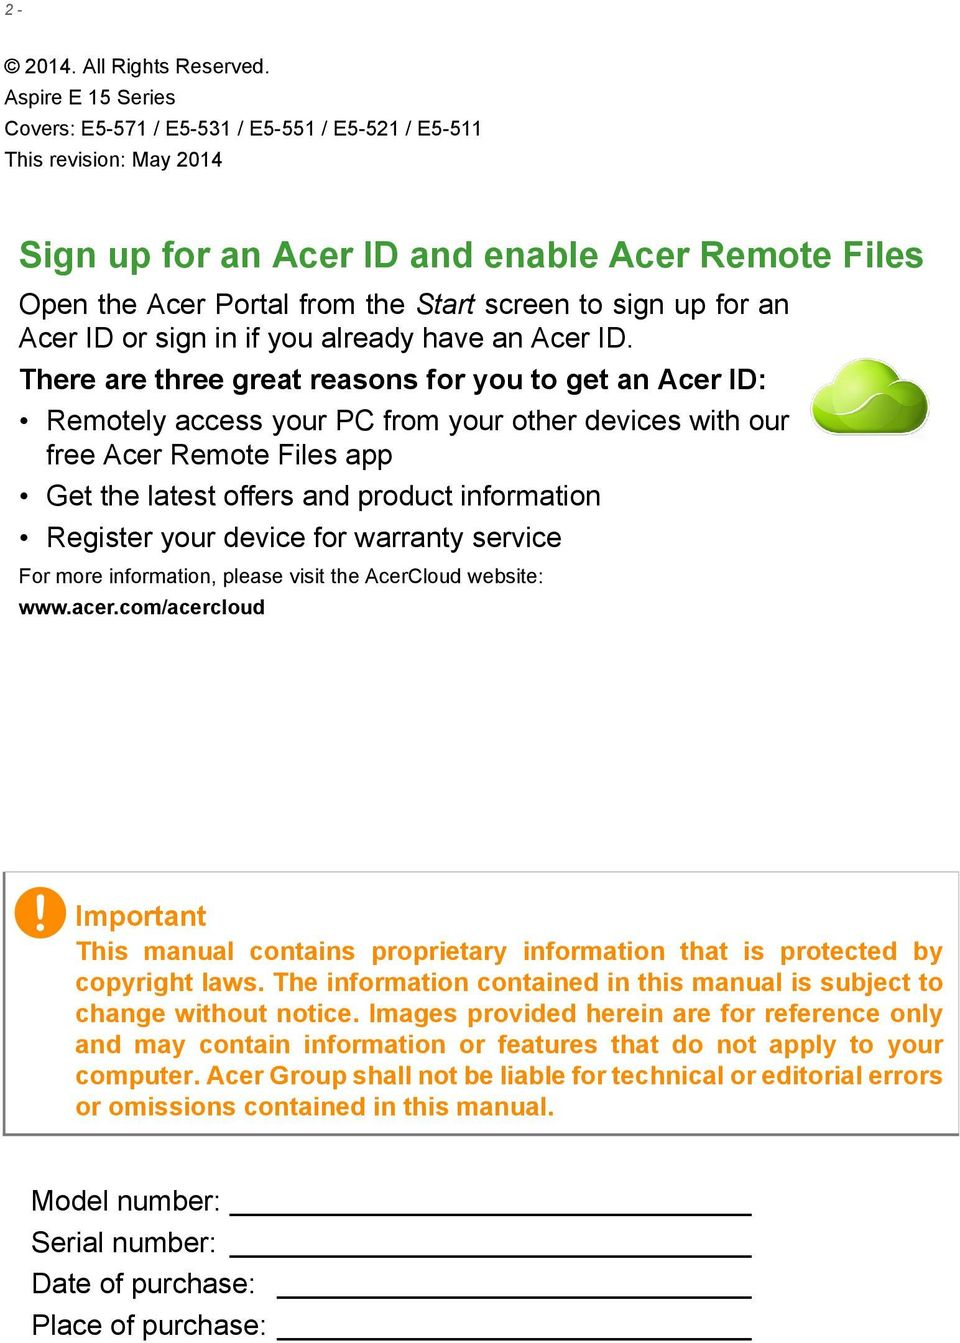 for an Acer ID or sign in if you already have an Acer ID.